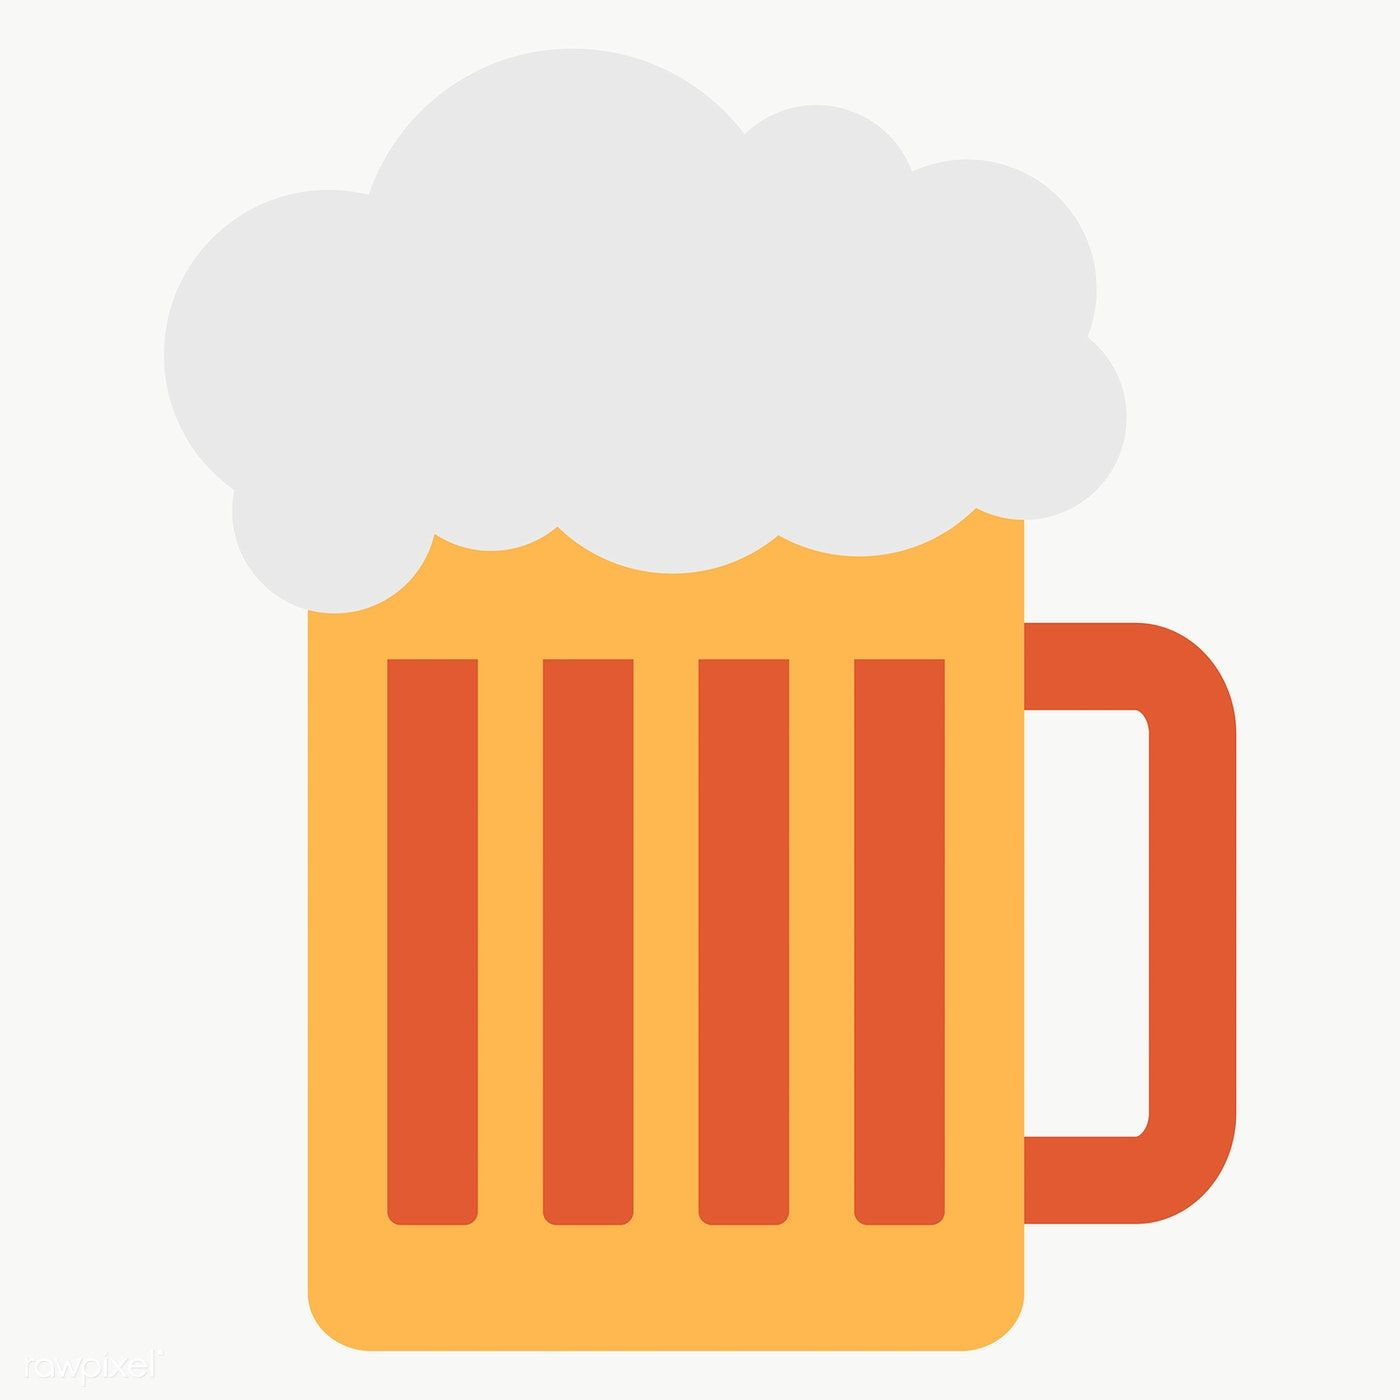 Beer Glass Design Element Transparent Png Free Image By Rawpixel Com Chayanit Beer Glass Design Beer Glass Beer Graphic